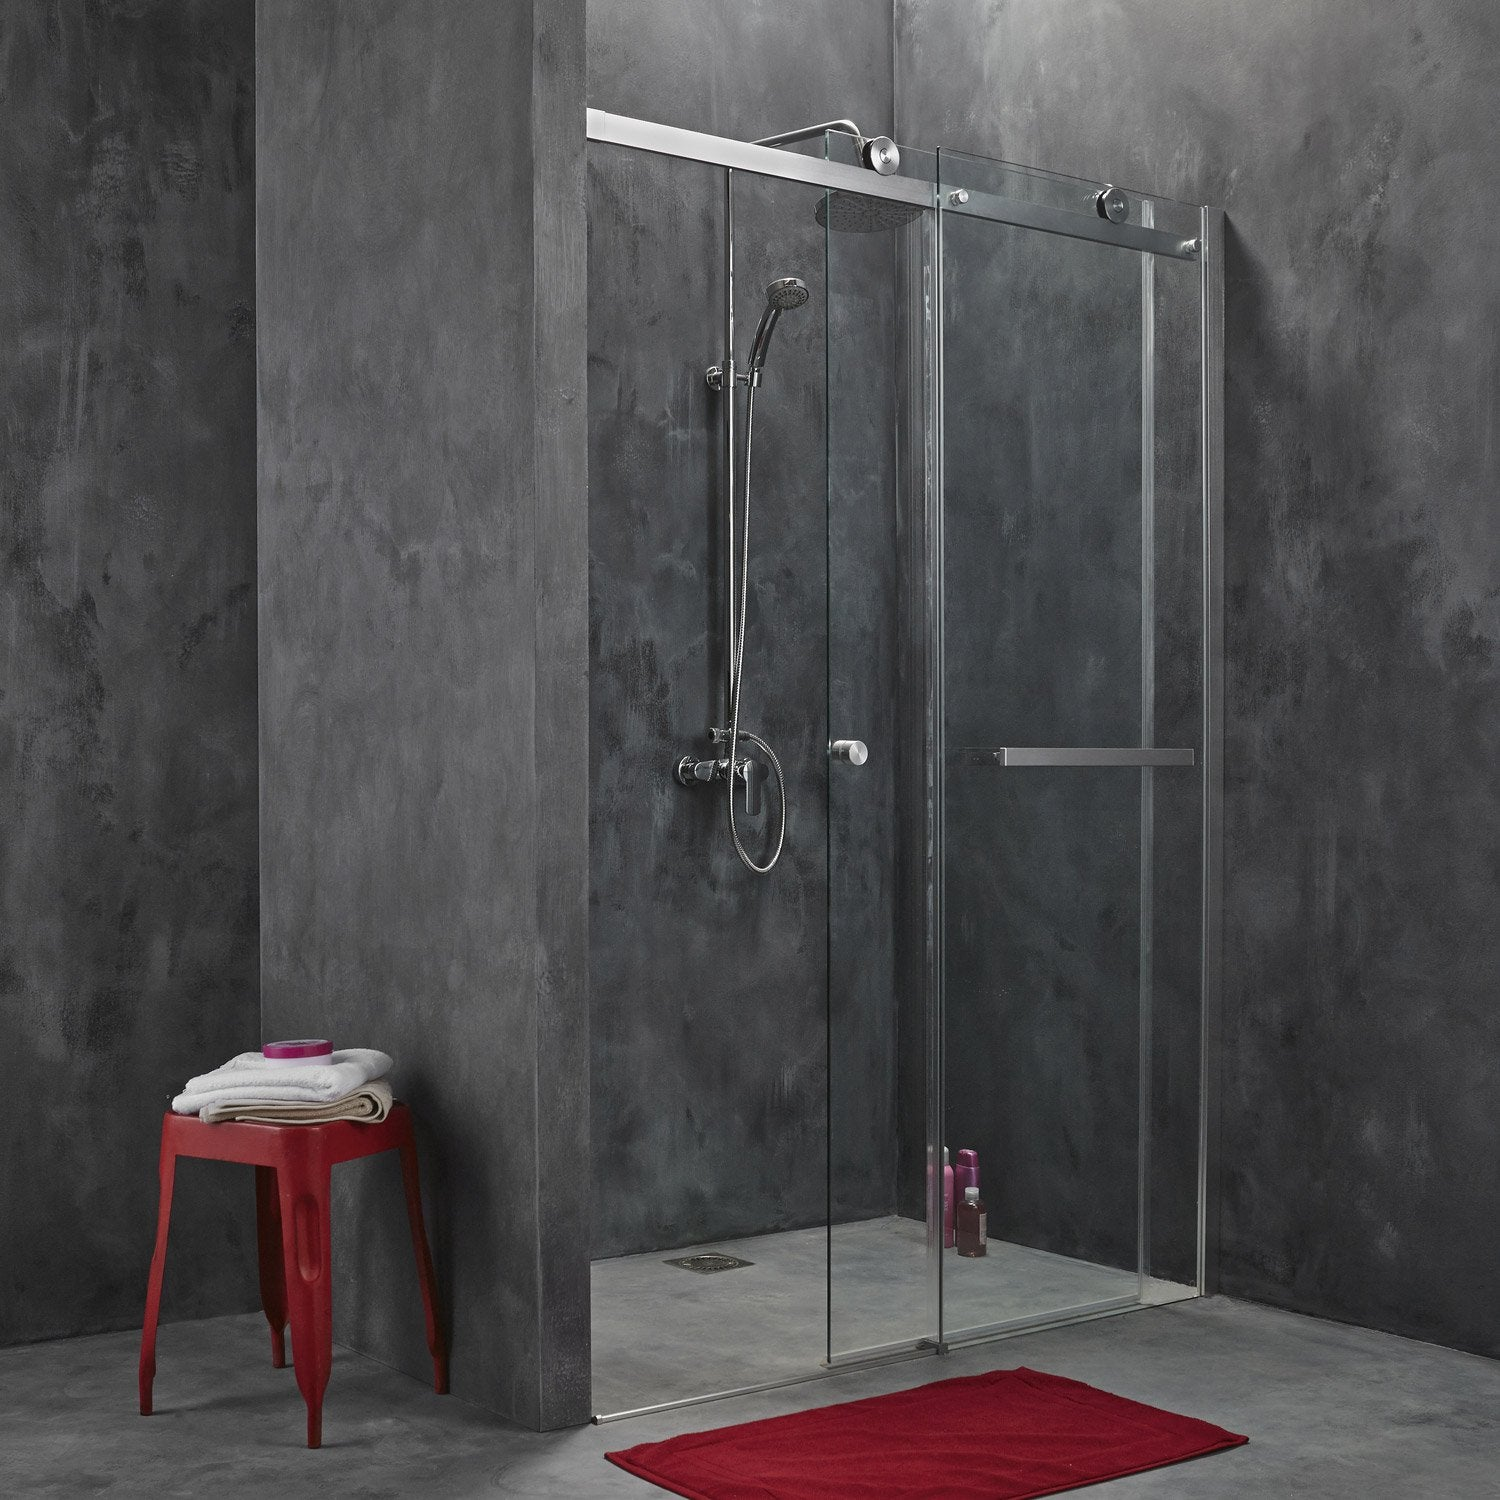 porte de douche coulissante 157 160 cm profil chrom fabrik leroy merlin. Black Bedroom Furniture Sets. Home Design Ideas